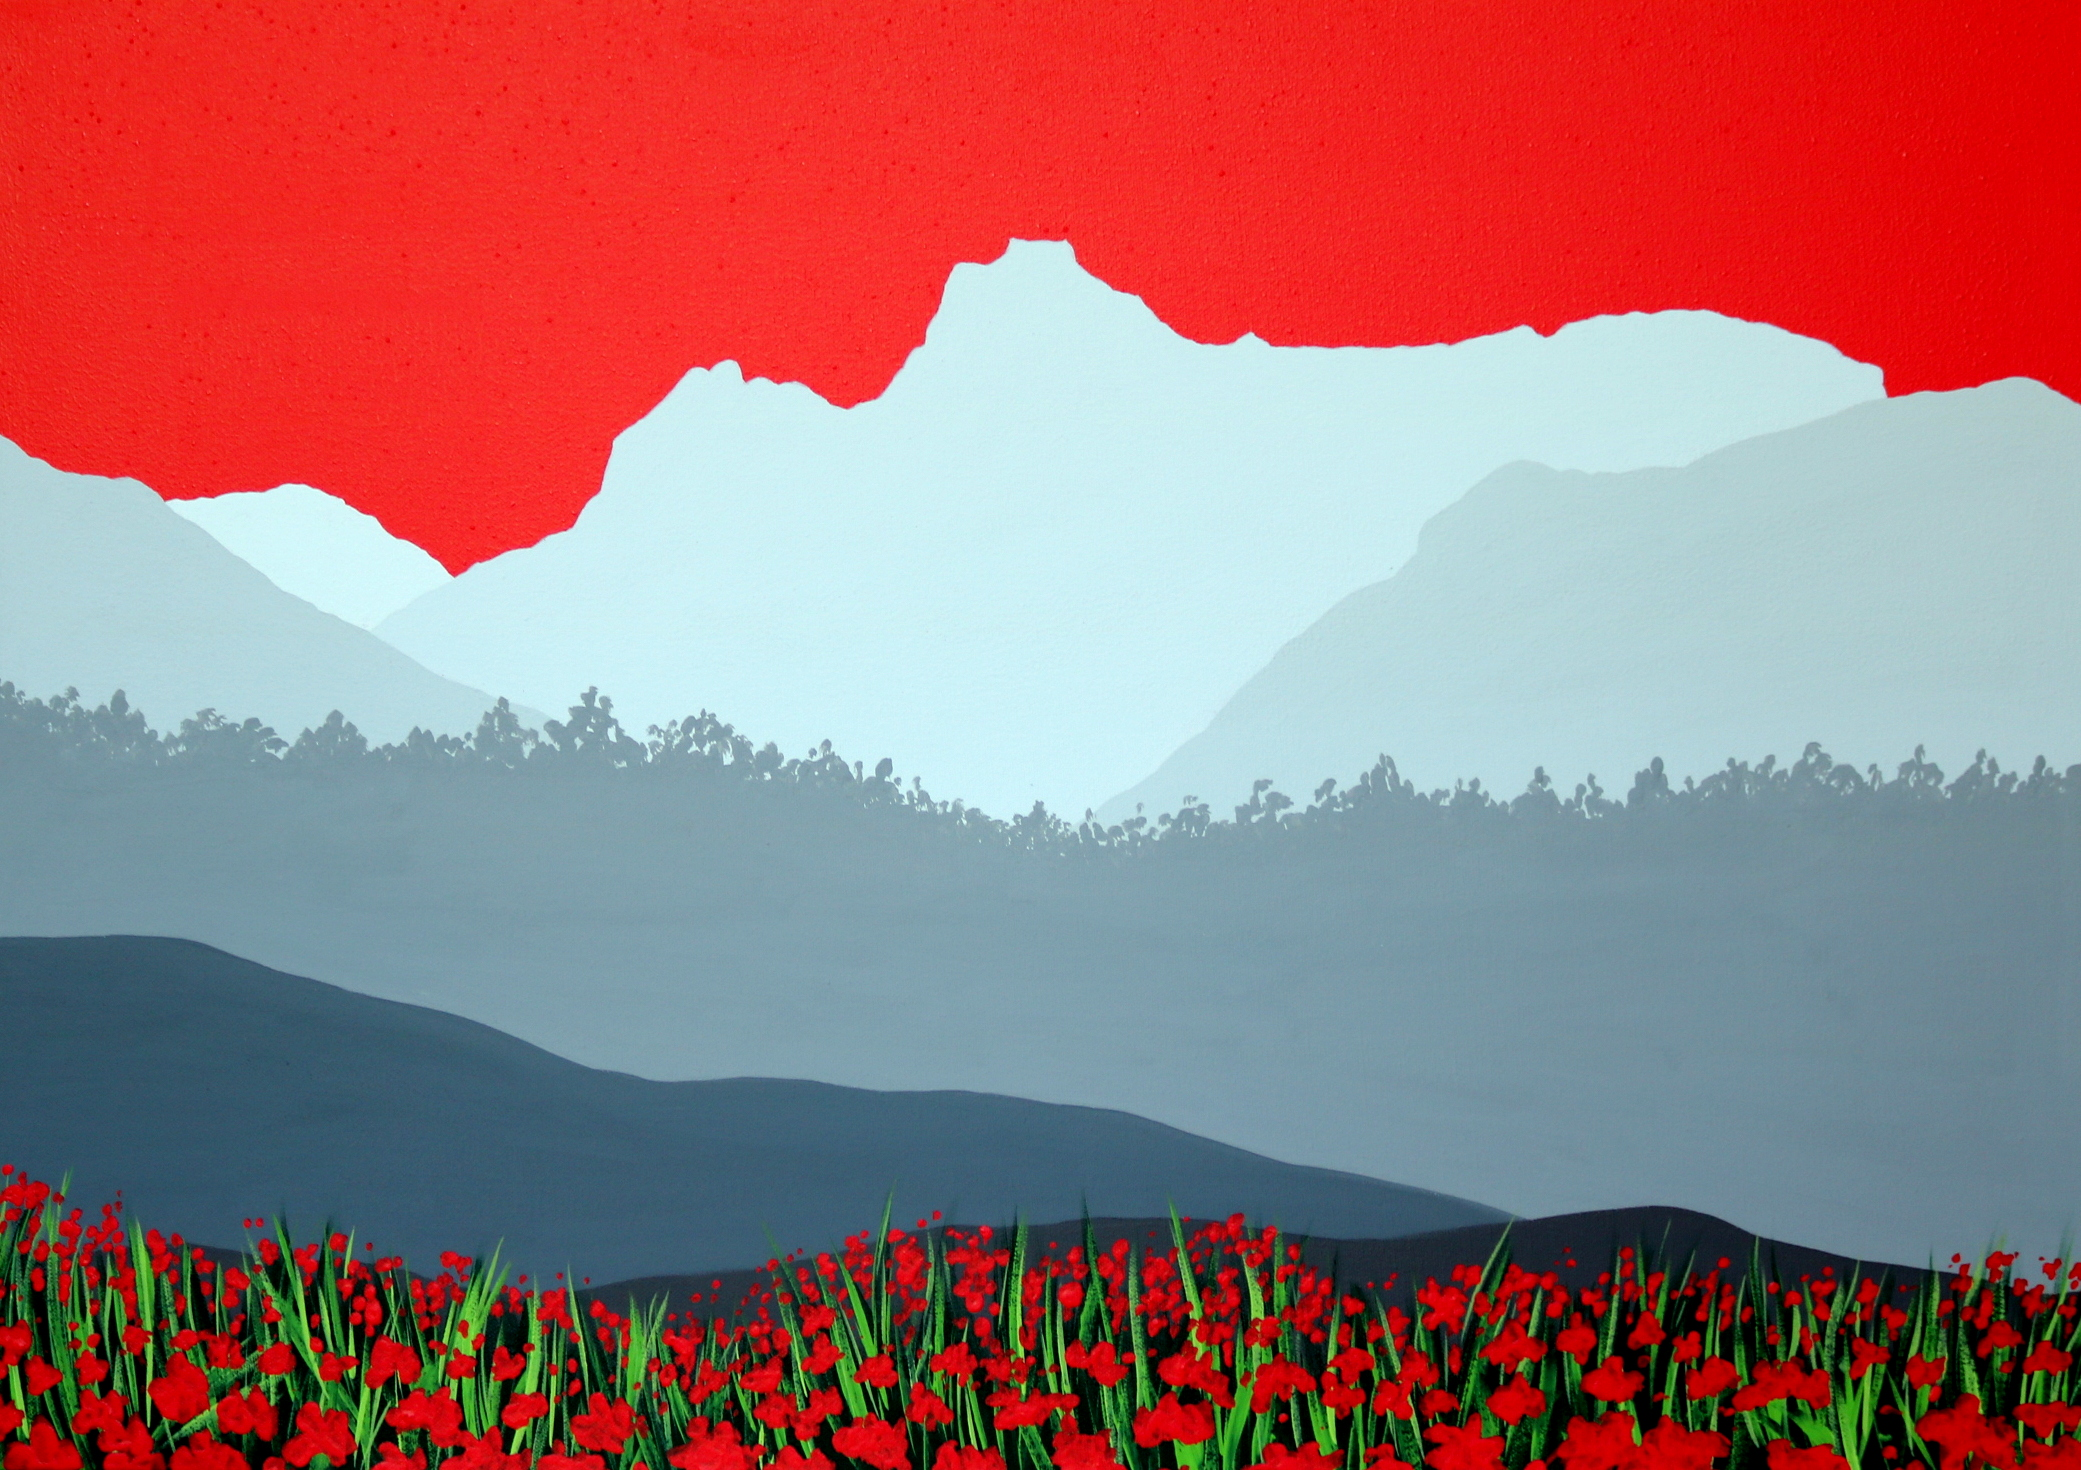 SOLD Langdale Pikes in red